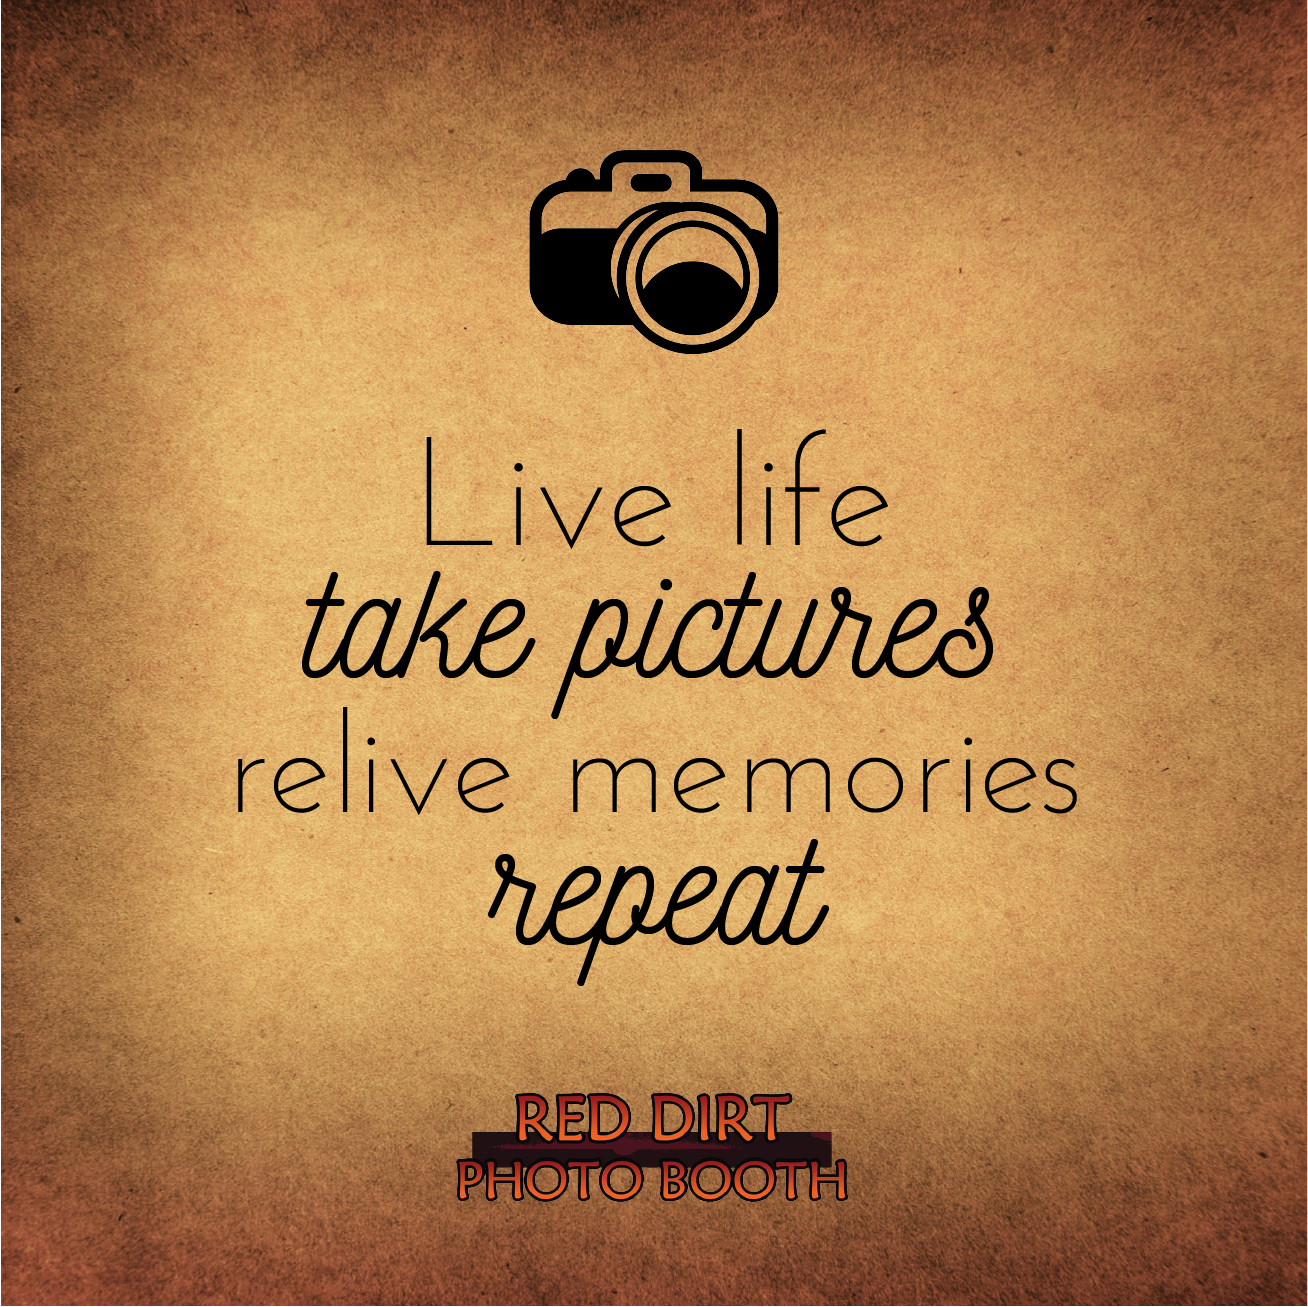 Live life take pictures relive memories repeat PhotoBooth